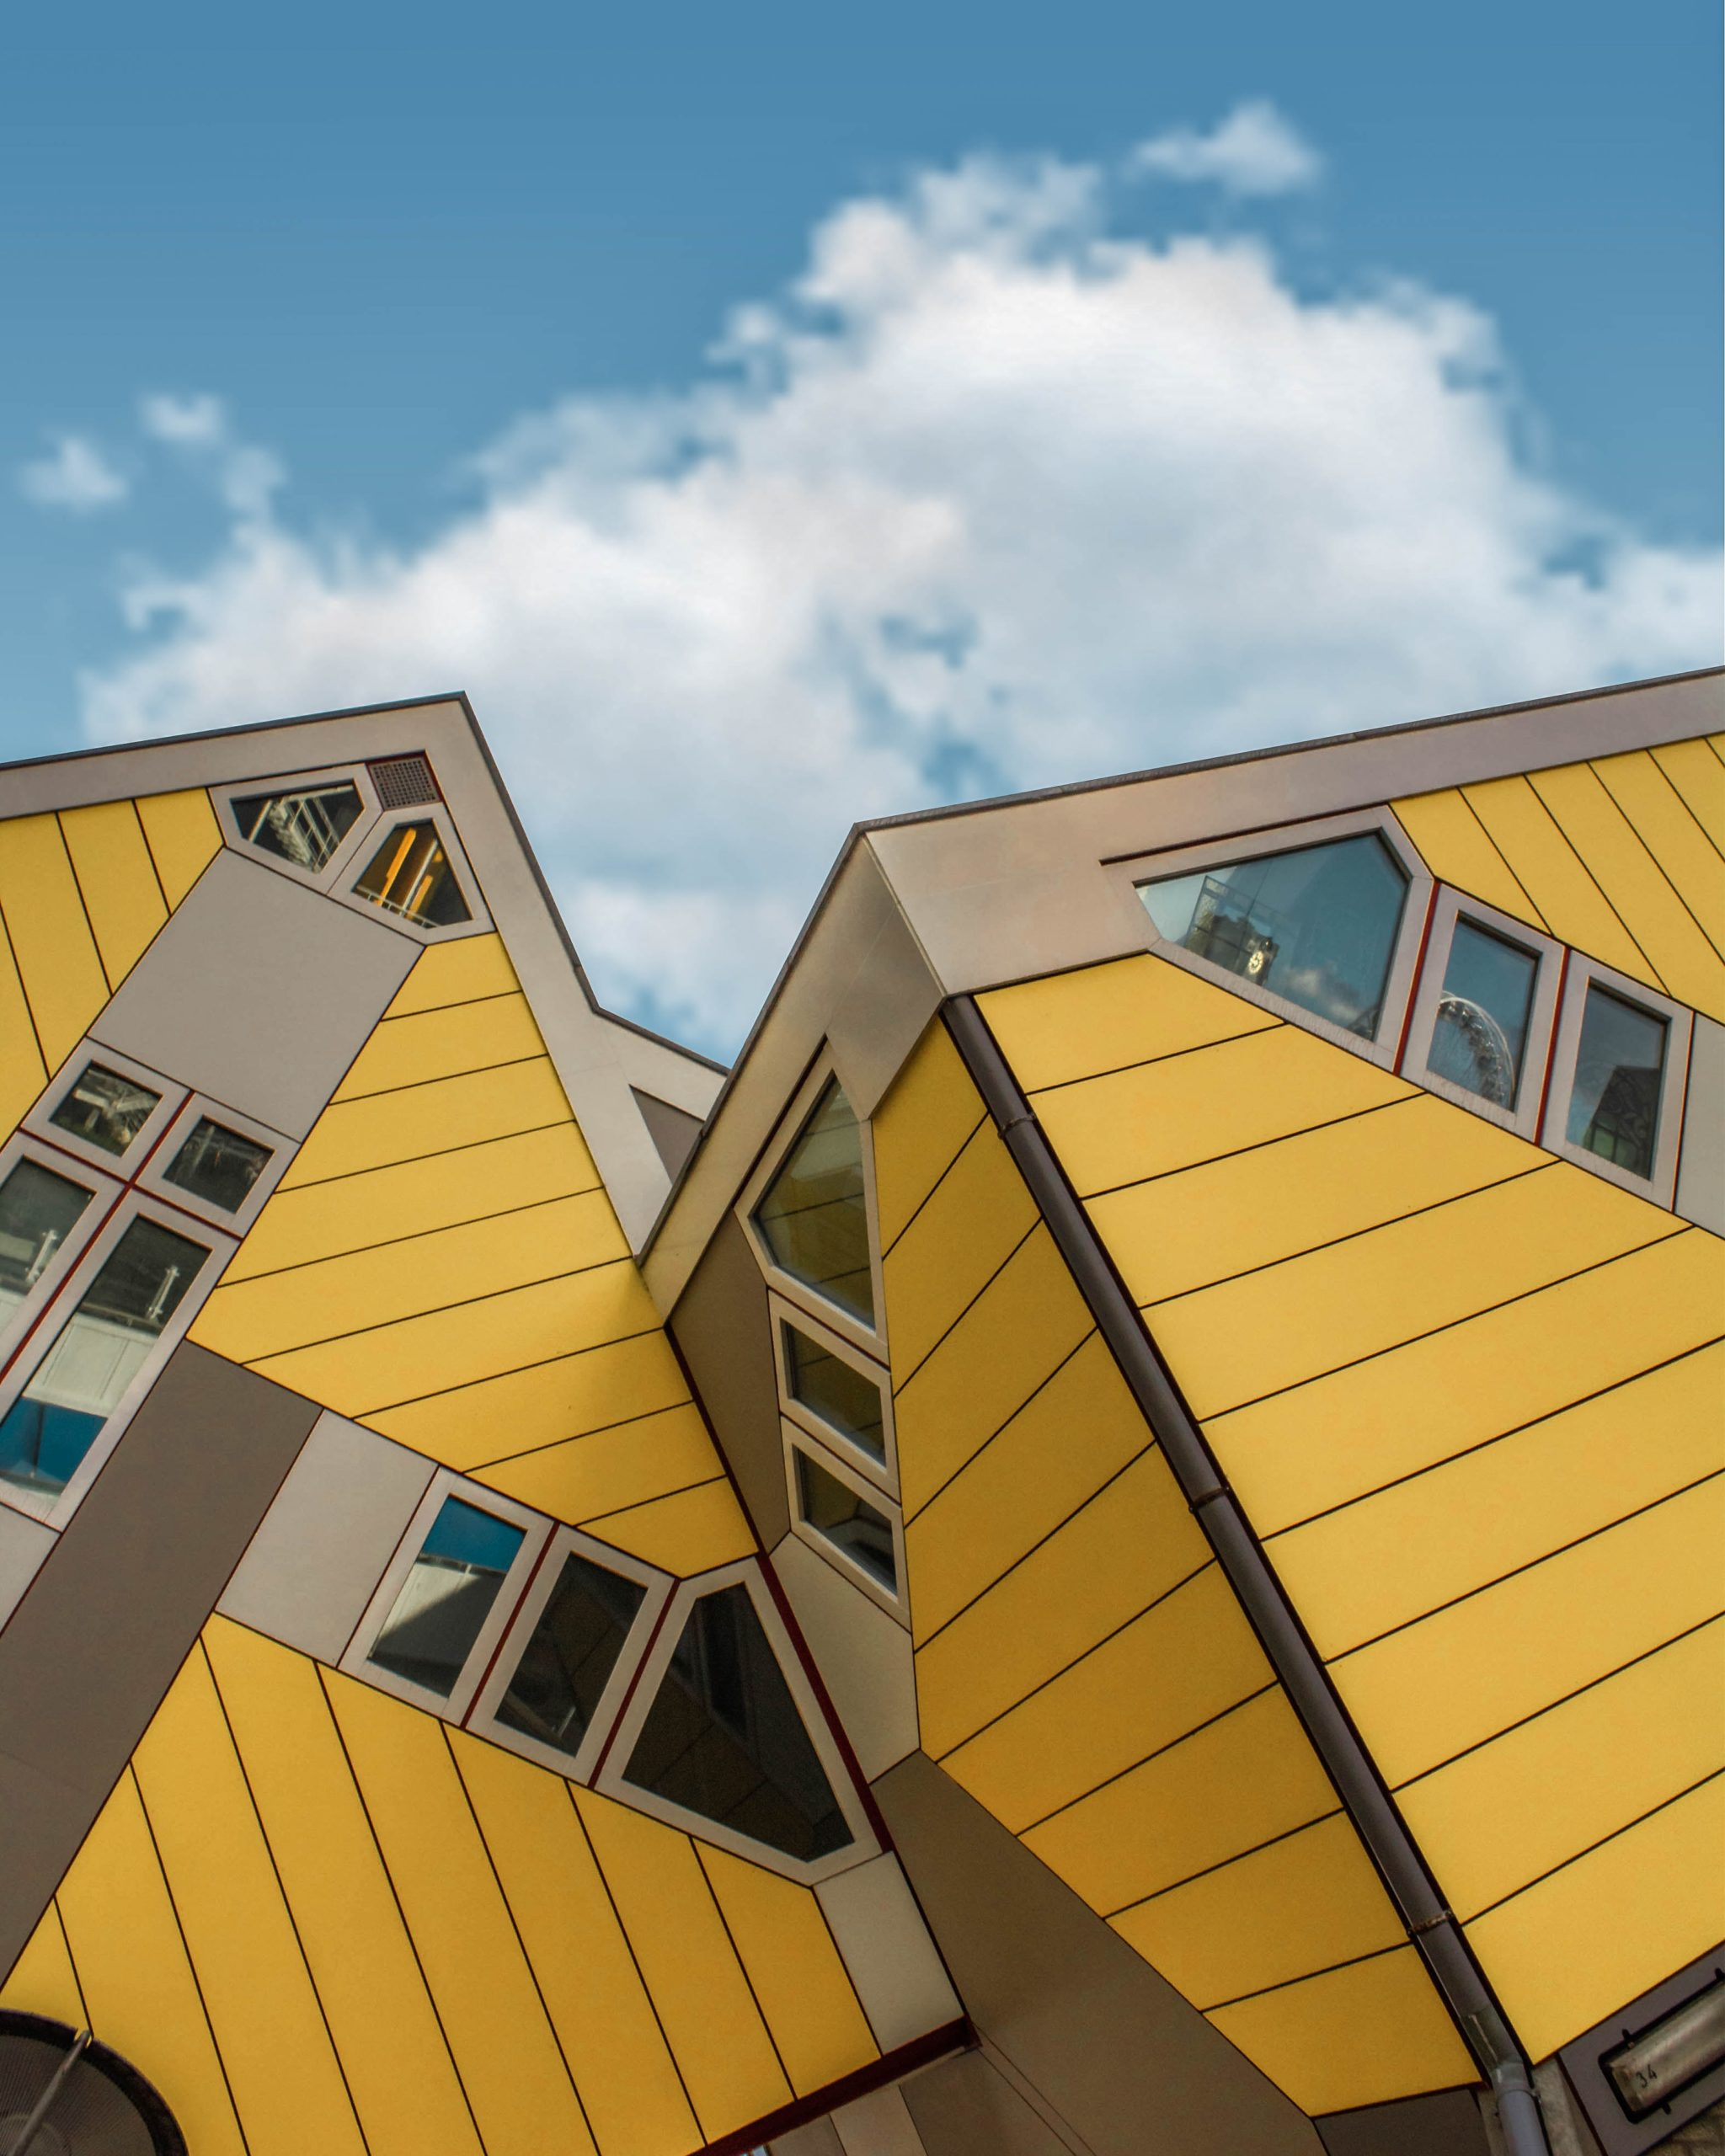 architectural photography of yellow and gray house roof